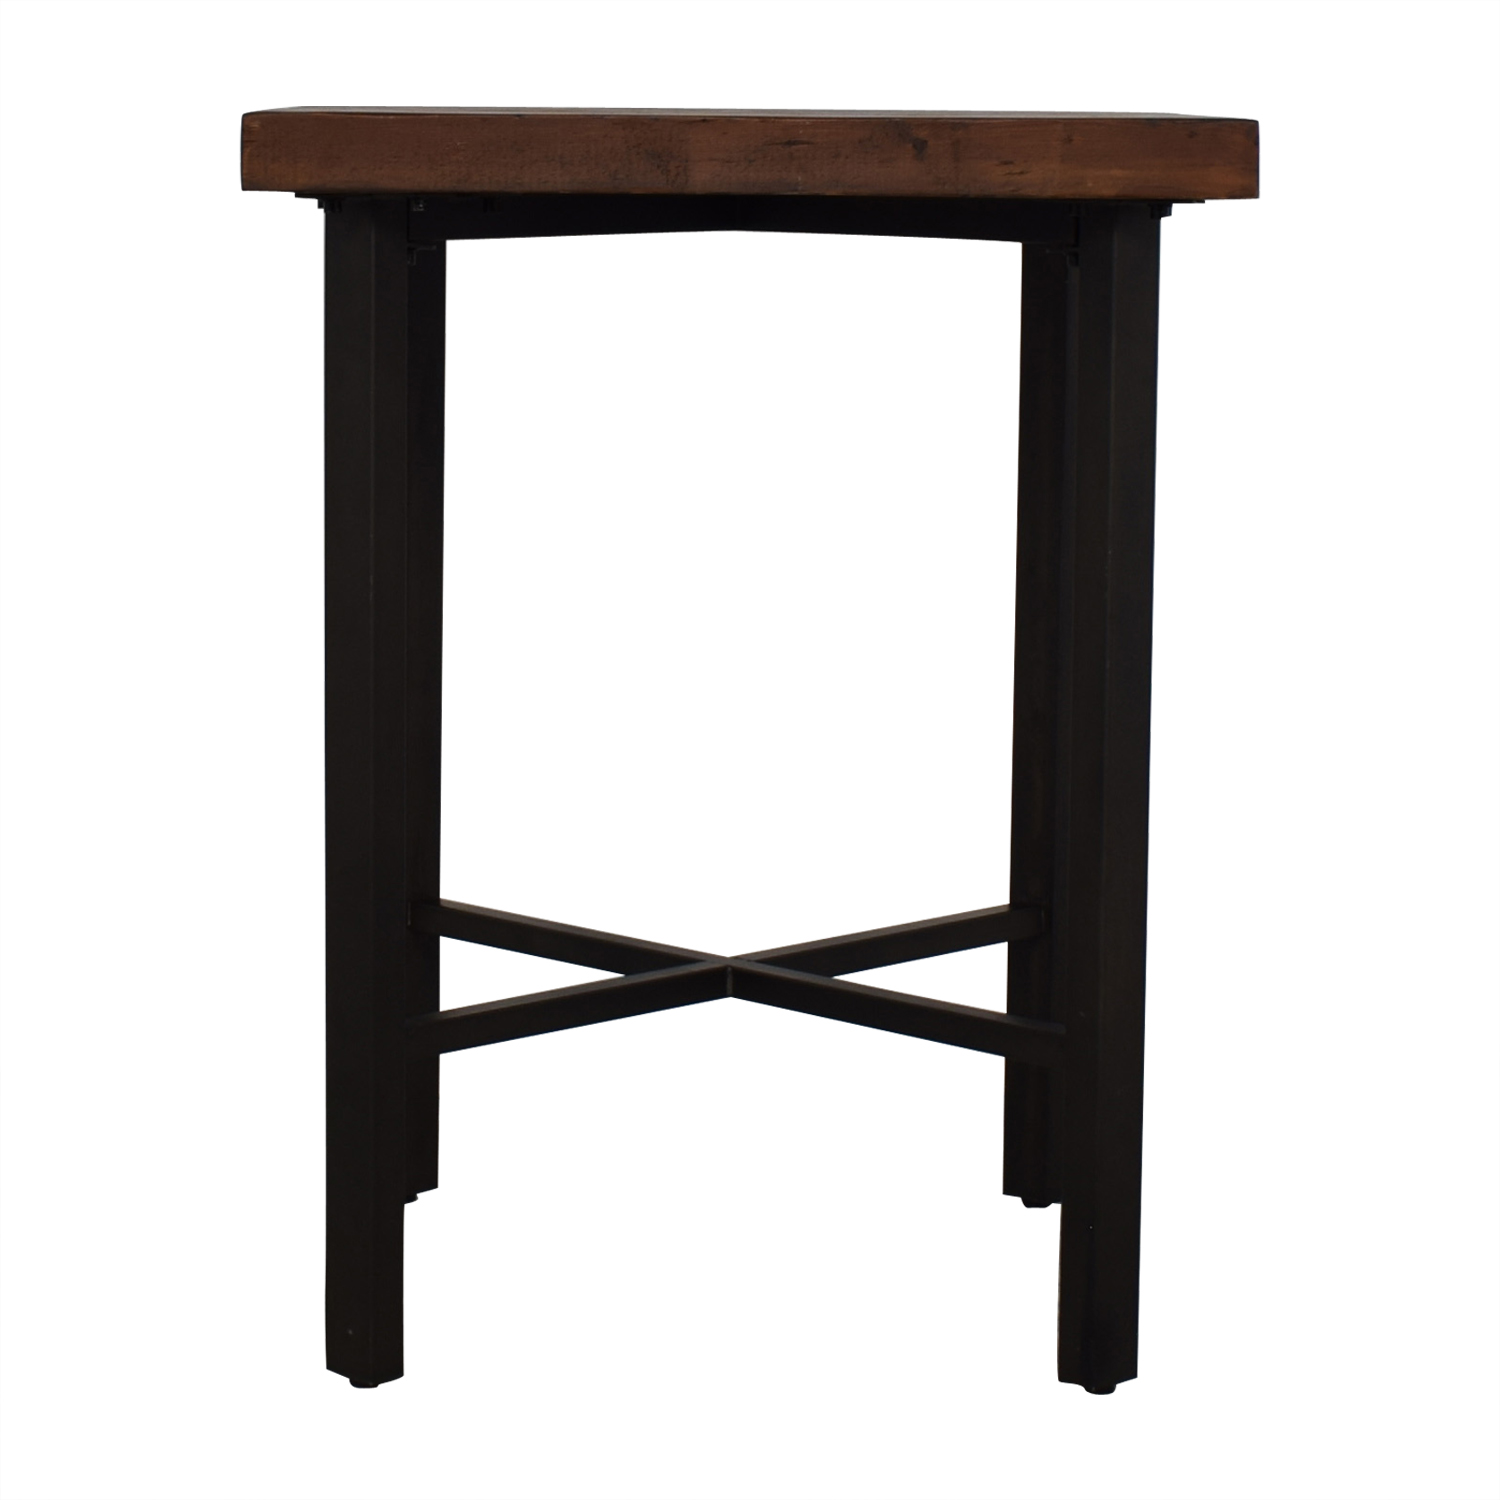 Pottery Barn Pottery Barn Griffin Reclaimed Wood Bar-Height Table used